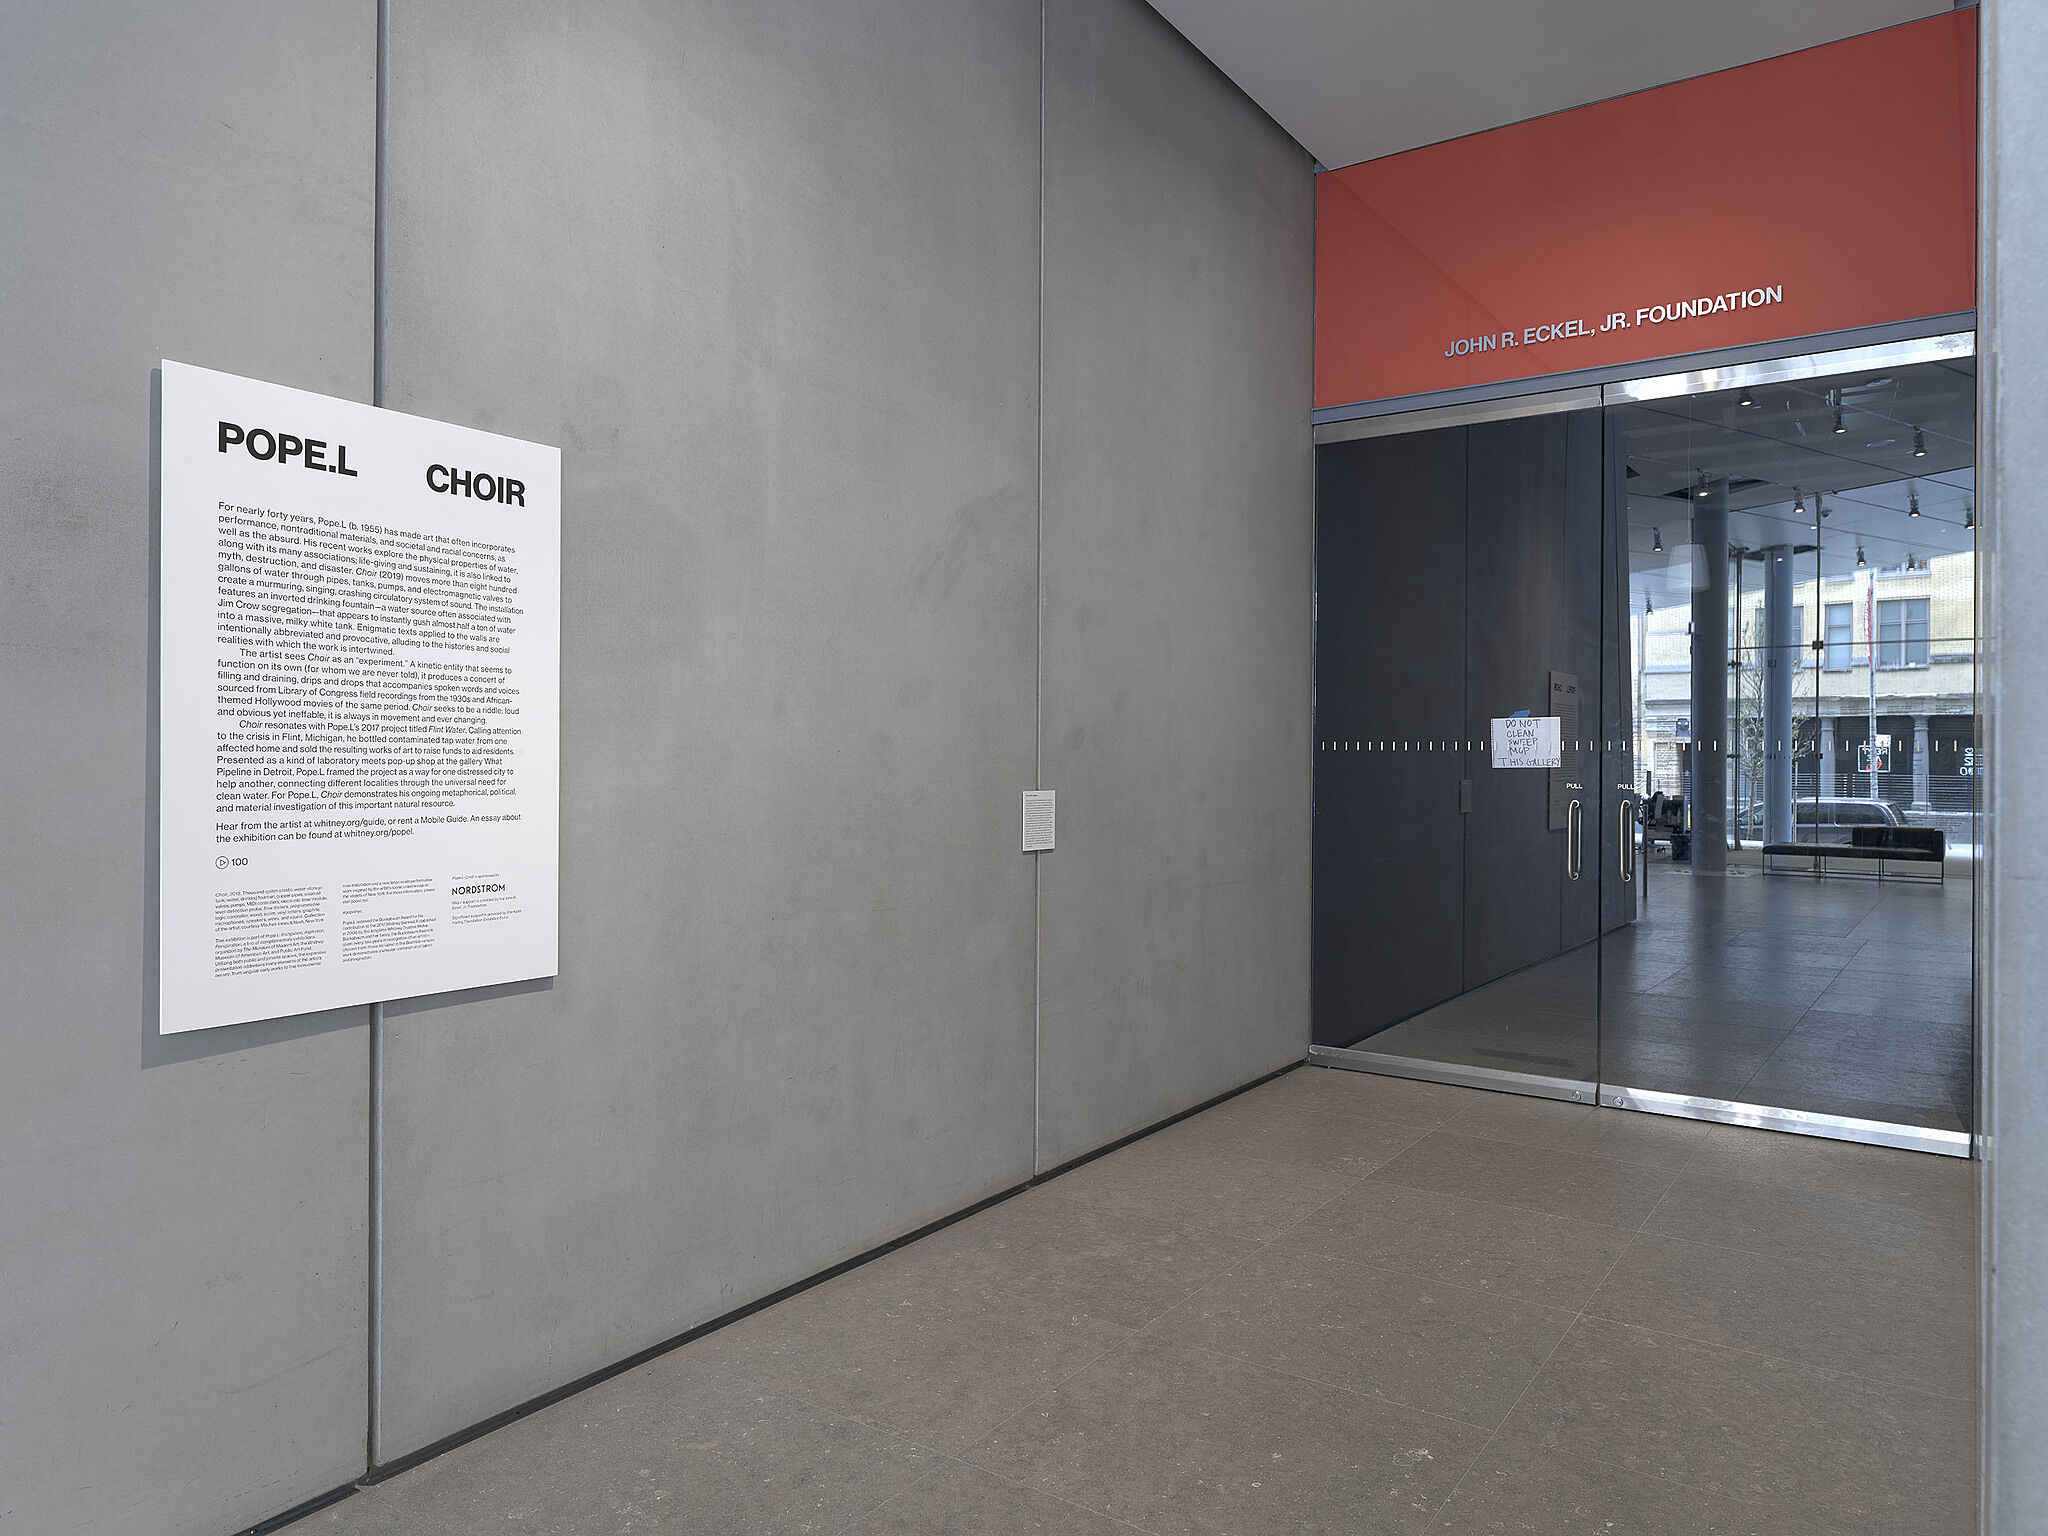 The entryway to a gallery exhibition with signage.